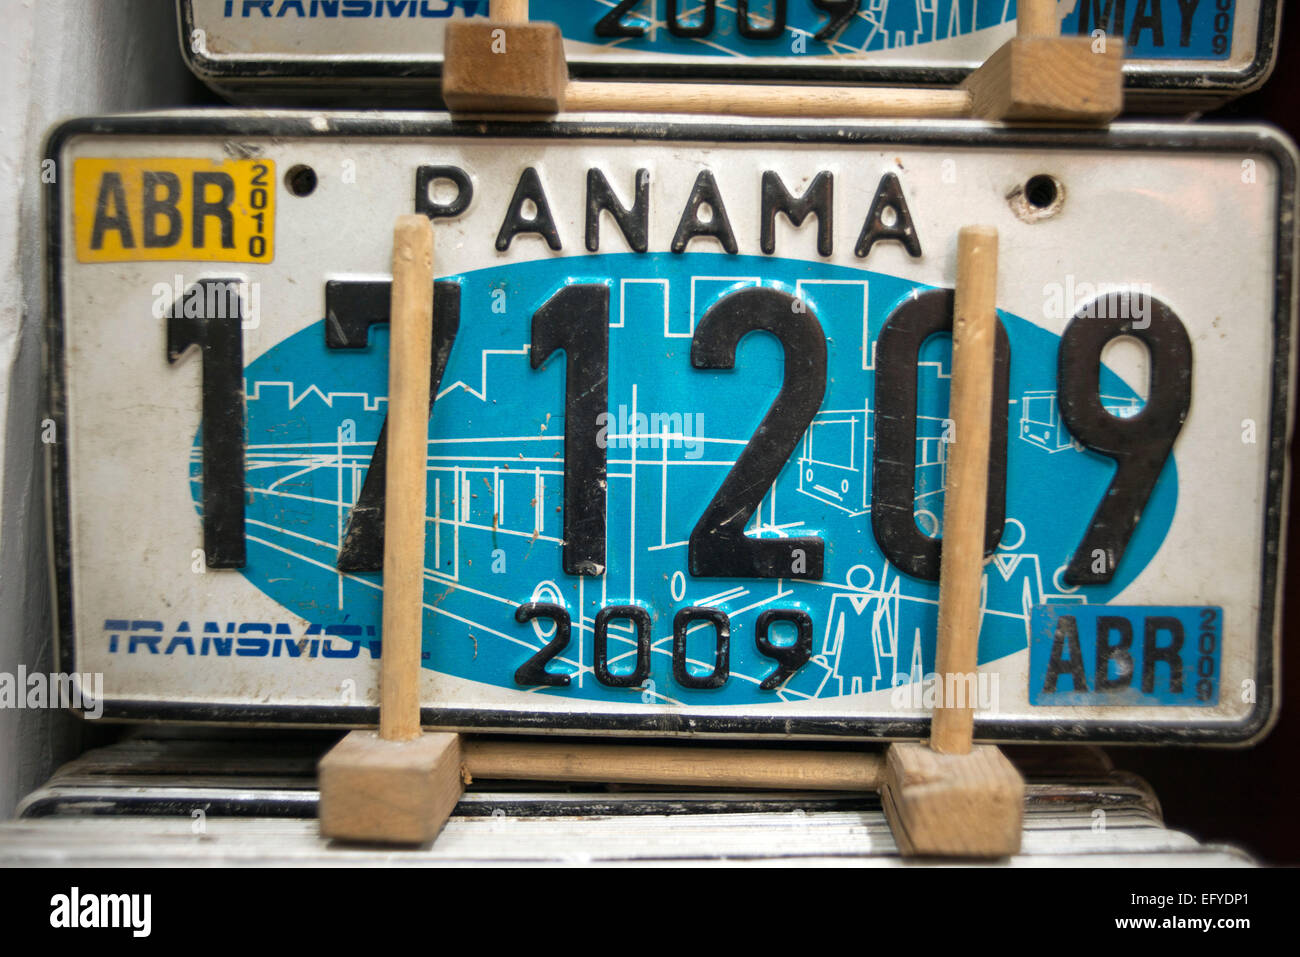 Panama Licence plate souvenir. Old car numberplates and Panama hats ...